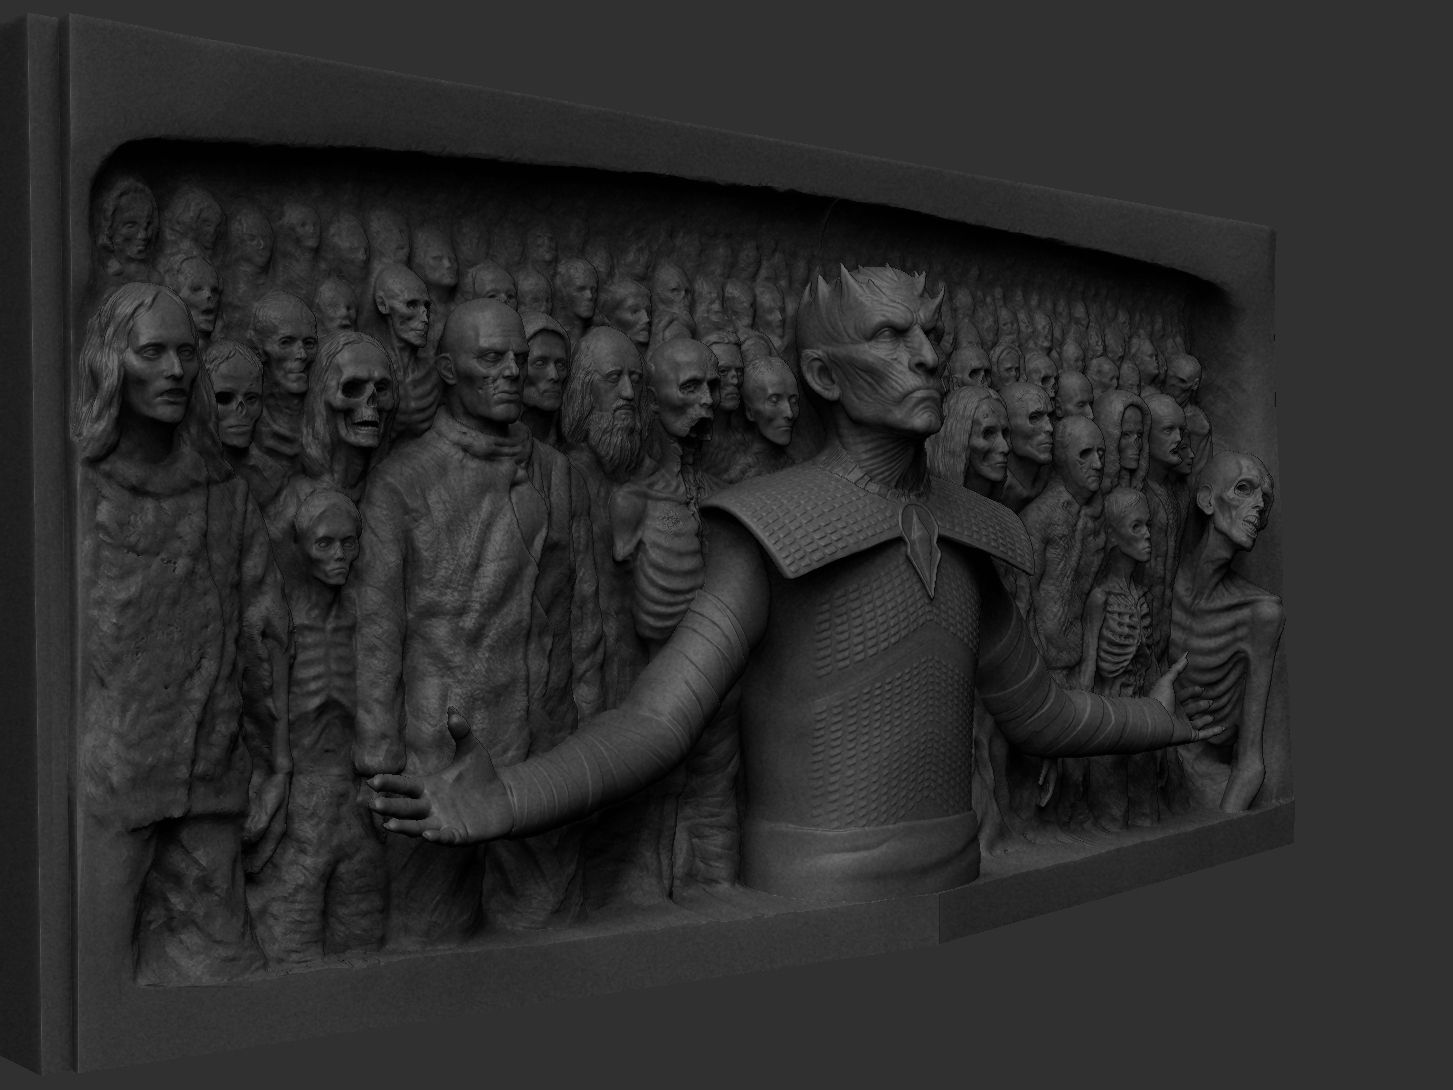 ZBru8778sh Document.jpg Download STL file Game of Thrones - Night King - Hardhome Relief • 3D printing model, brkhy